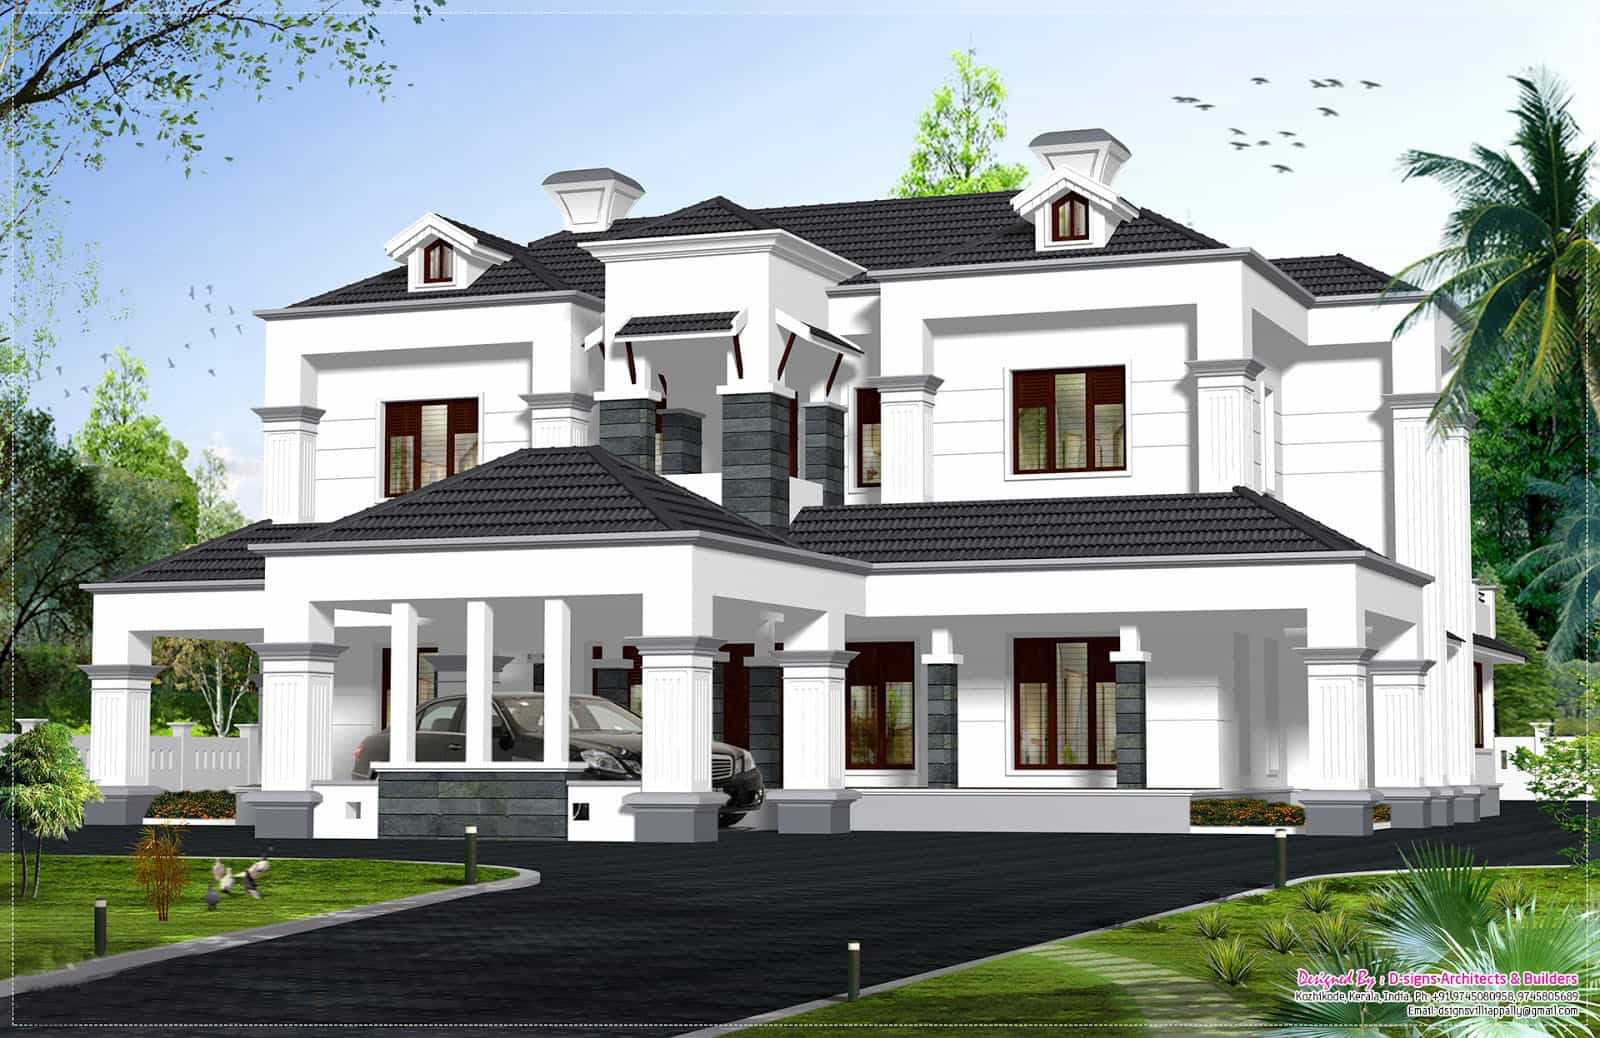 Low cost house in kerala with plan photos 991 sq ft khp for Kerala model house photos with details